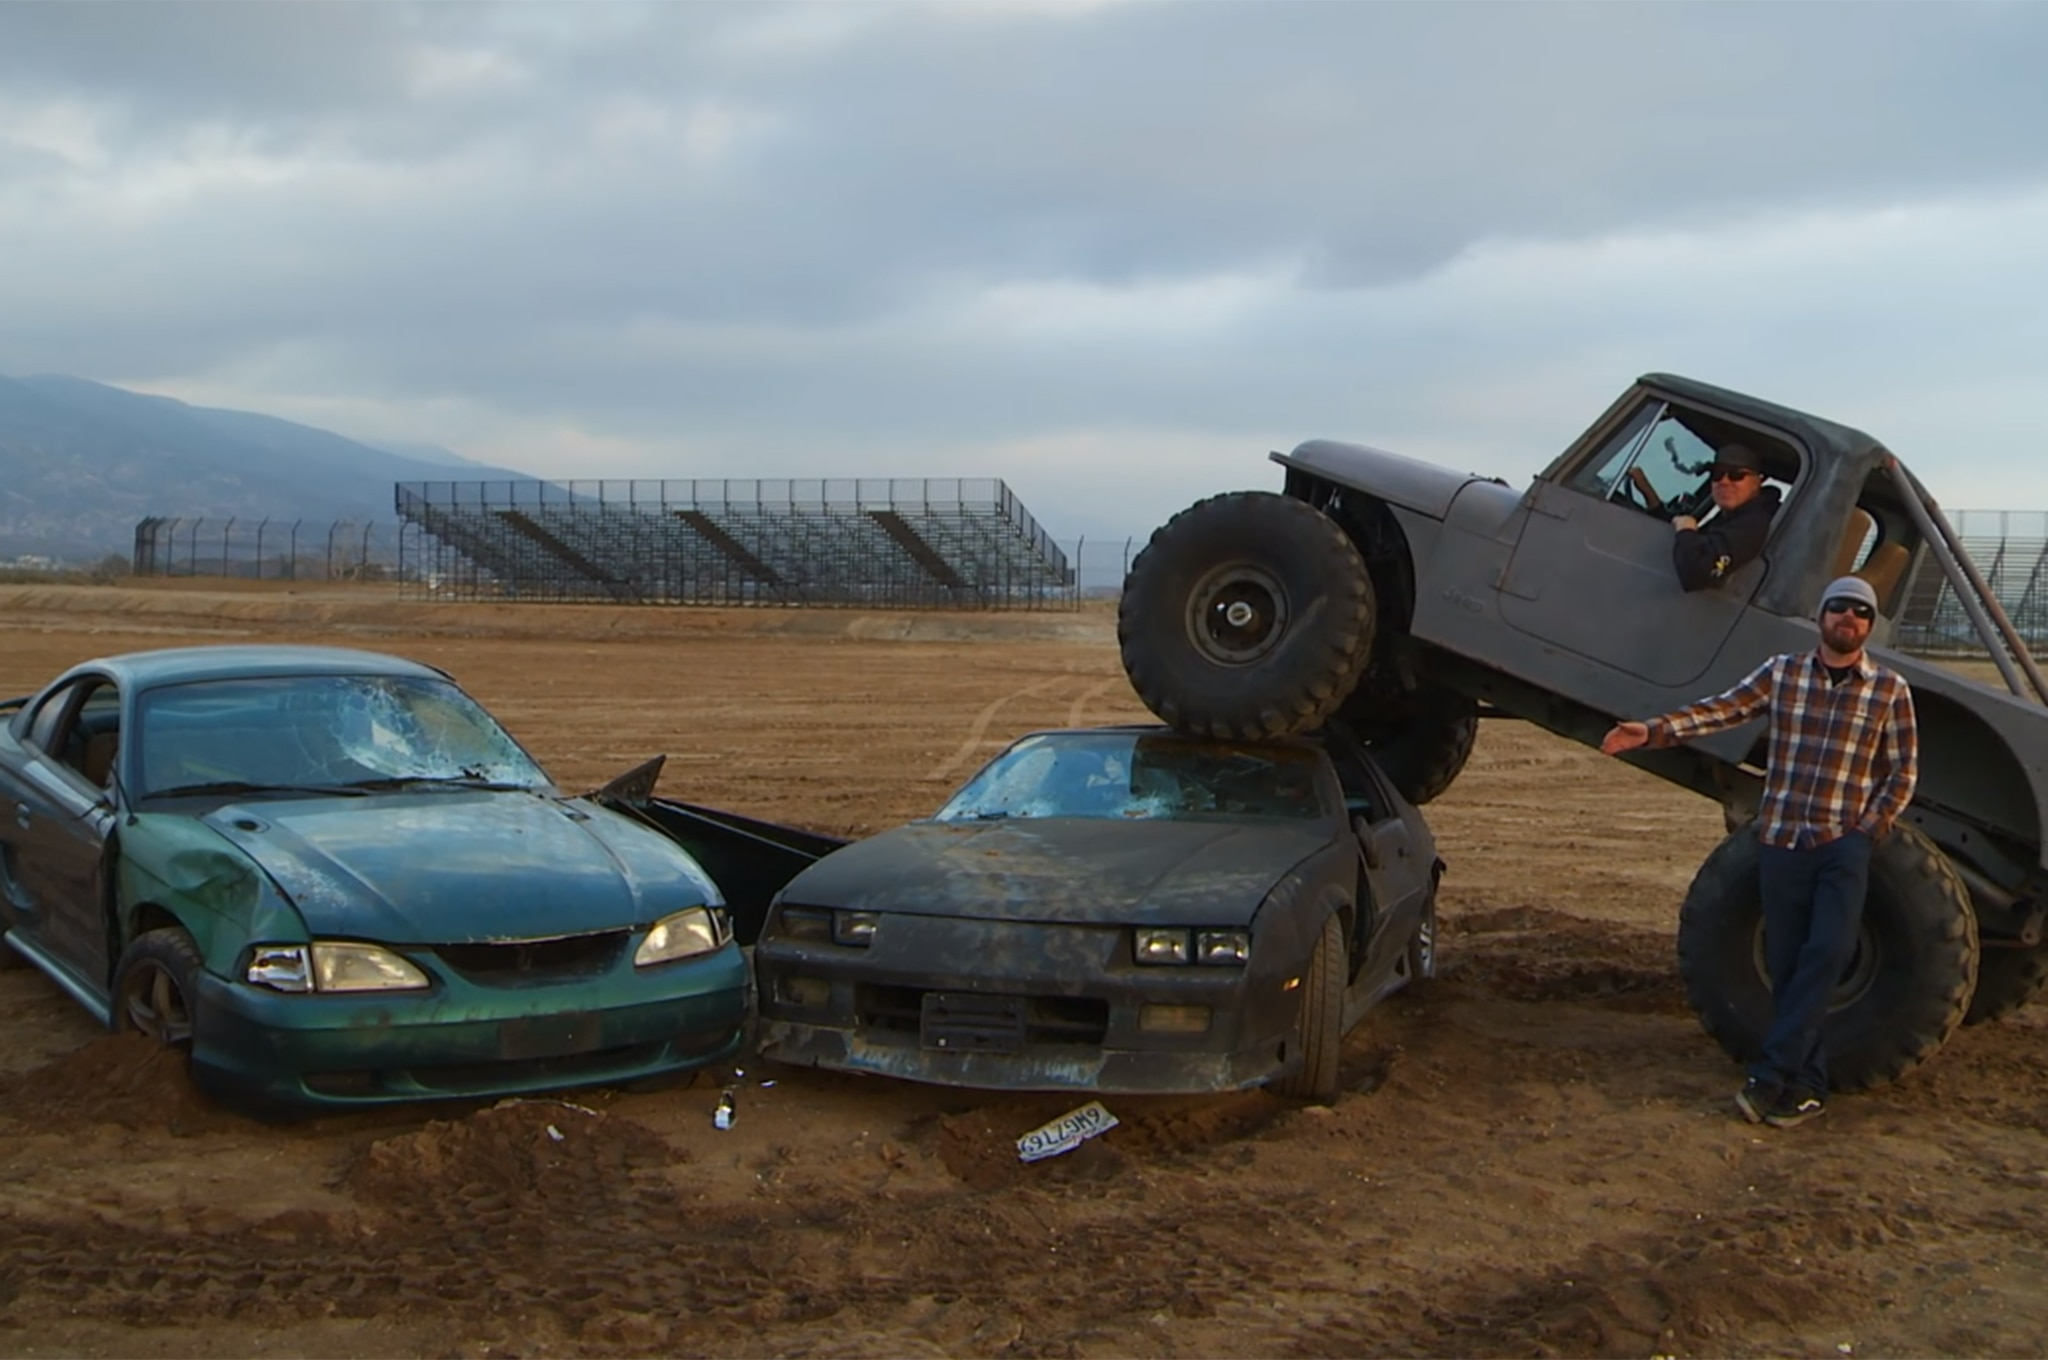 Roadkill Trashes a Crapped-Out Mustang and Camaro on ...